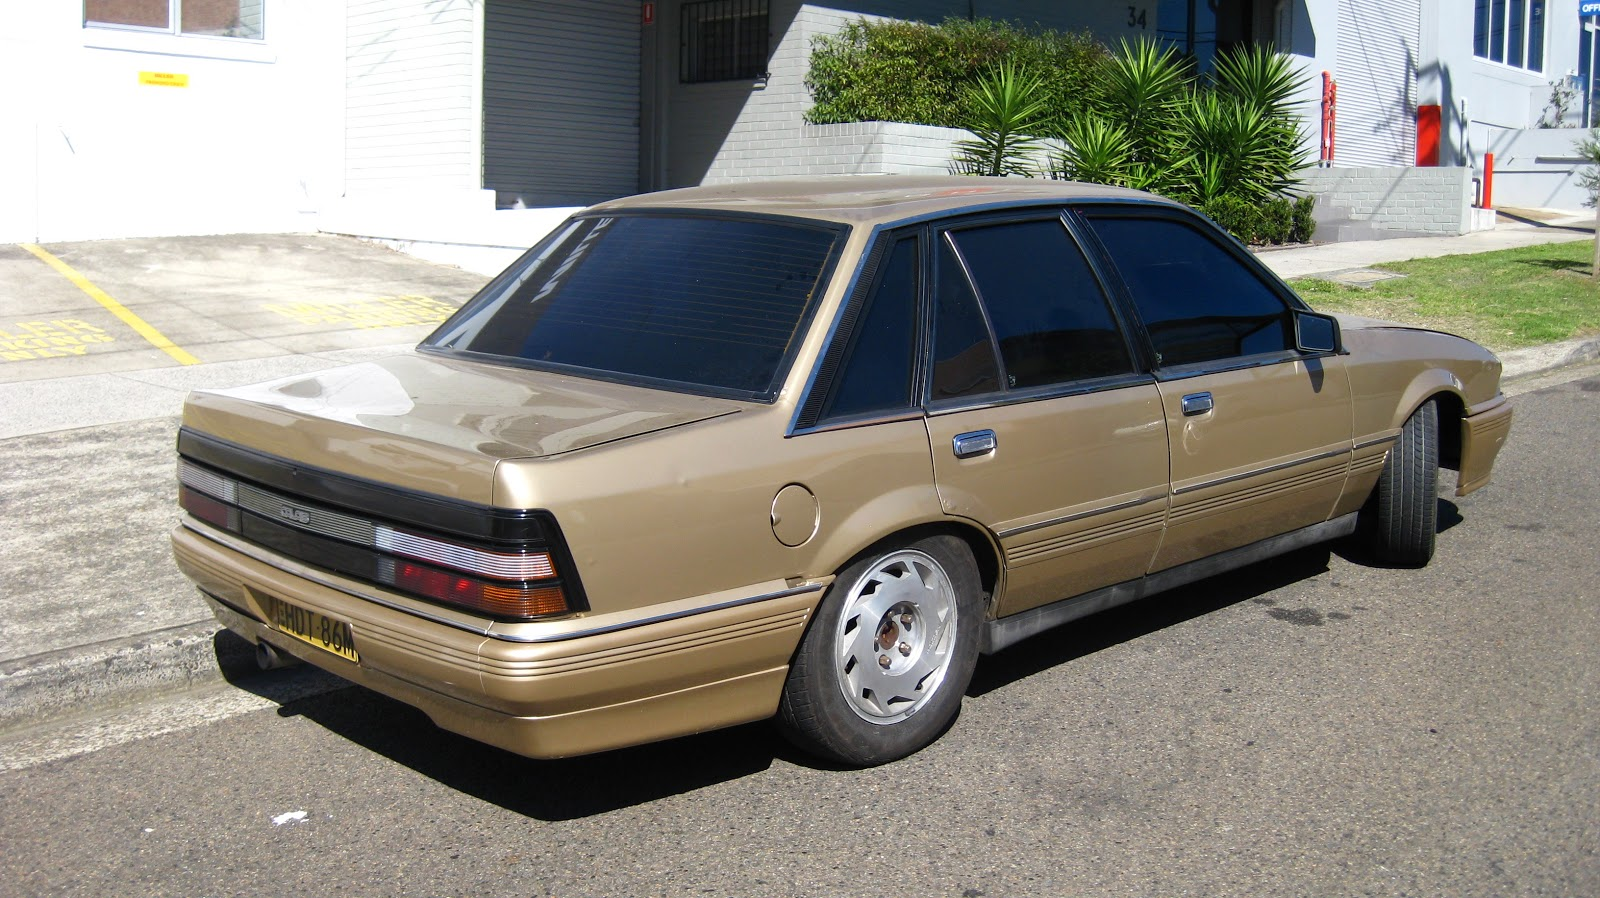 1986 Holden Vl: Aussie Old Parked Cars: 1986 Holden VL Calais Sedan